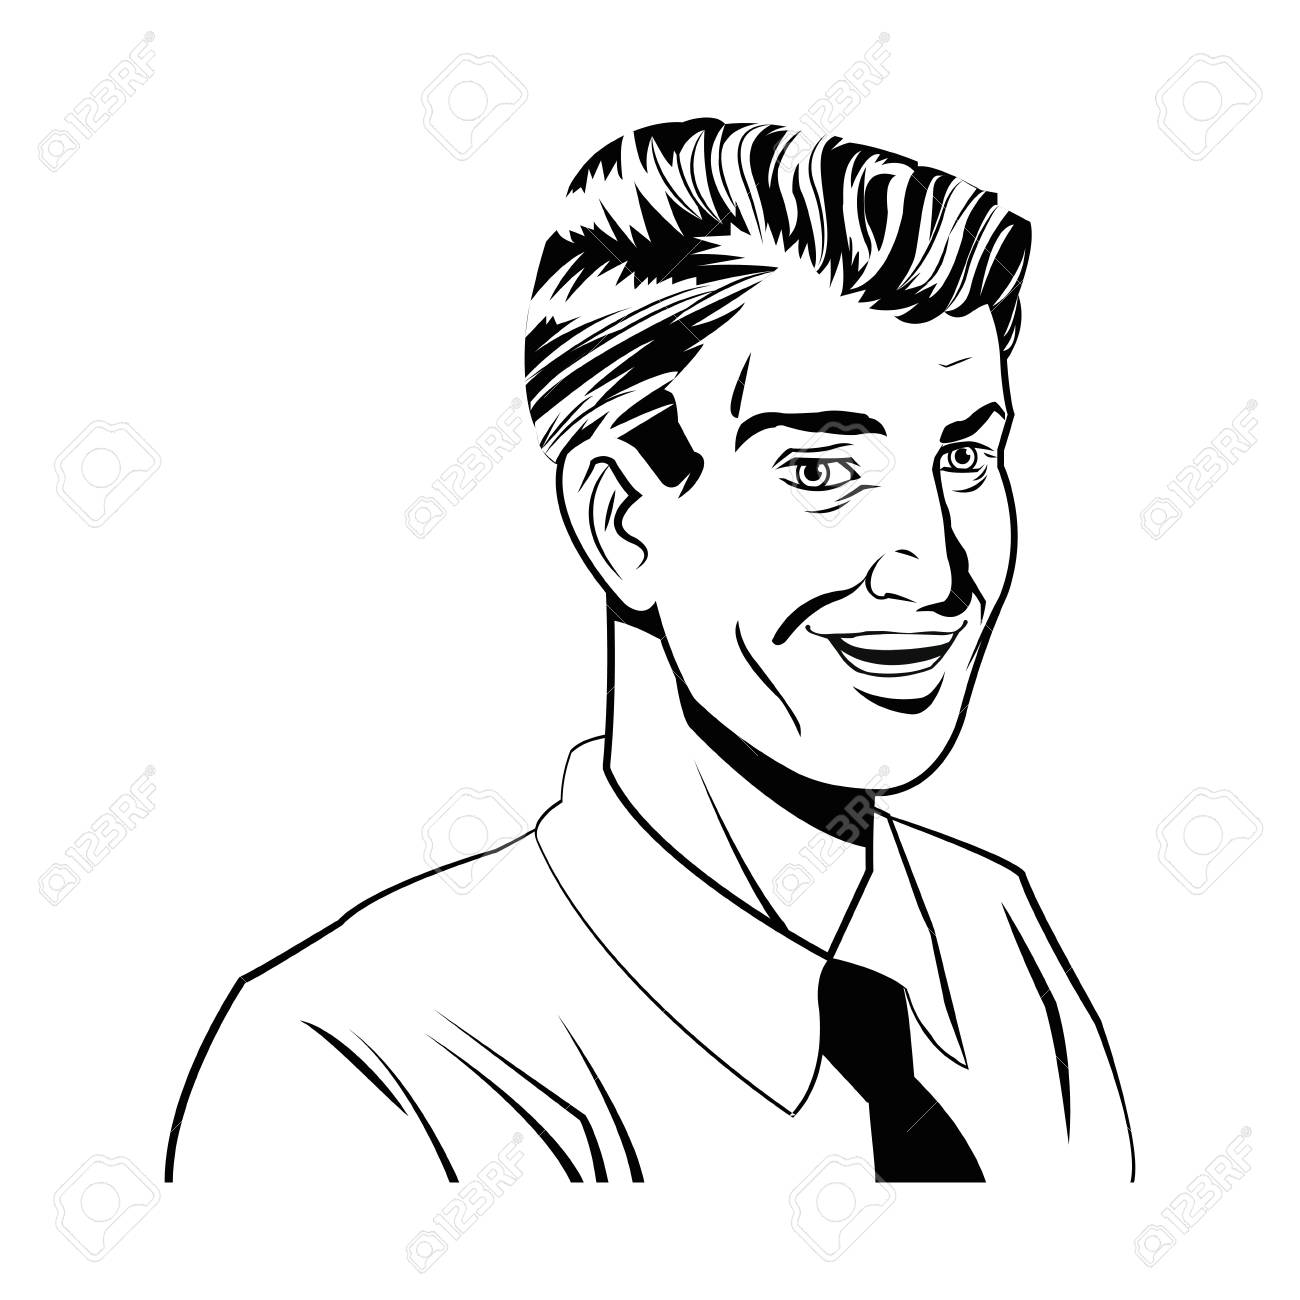 1300x1300 Happy Man Comic Style Black And White Vector Illustration Royalty